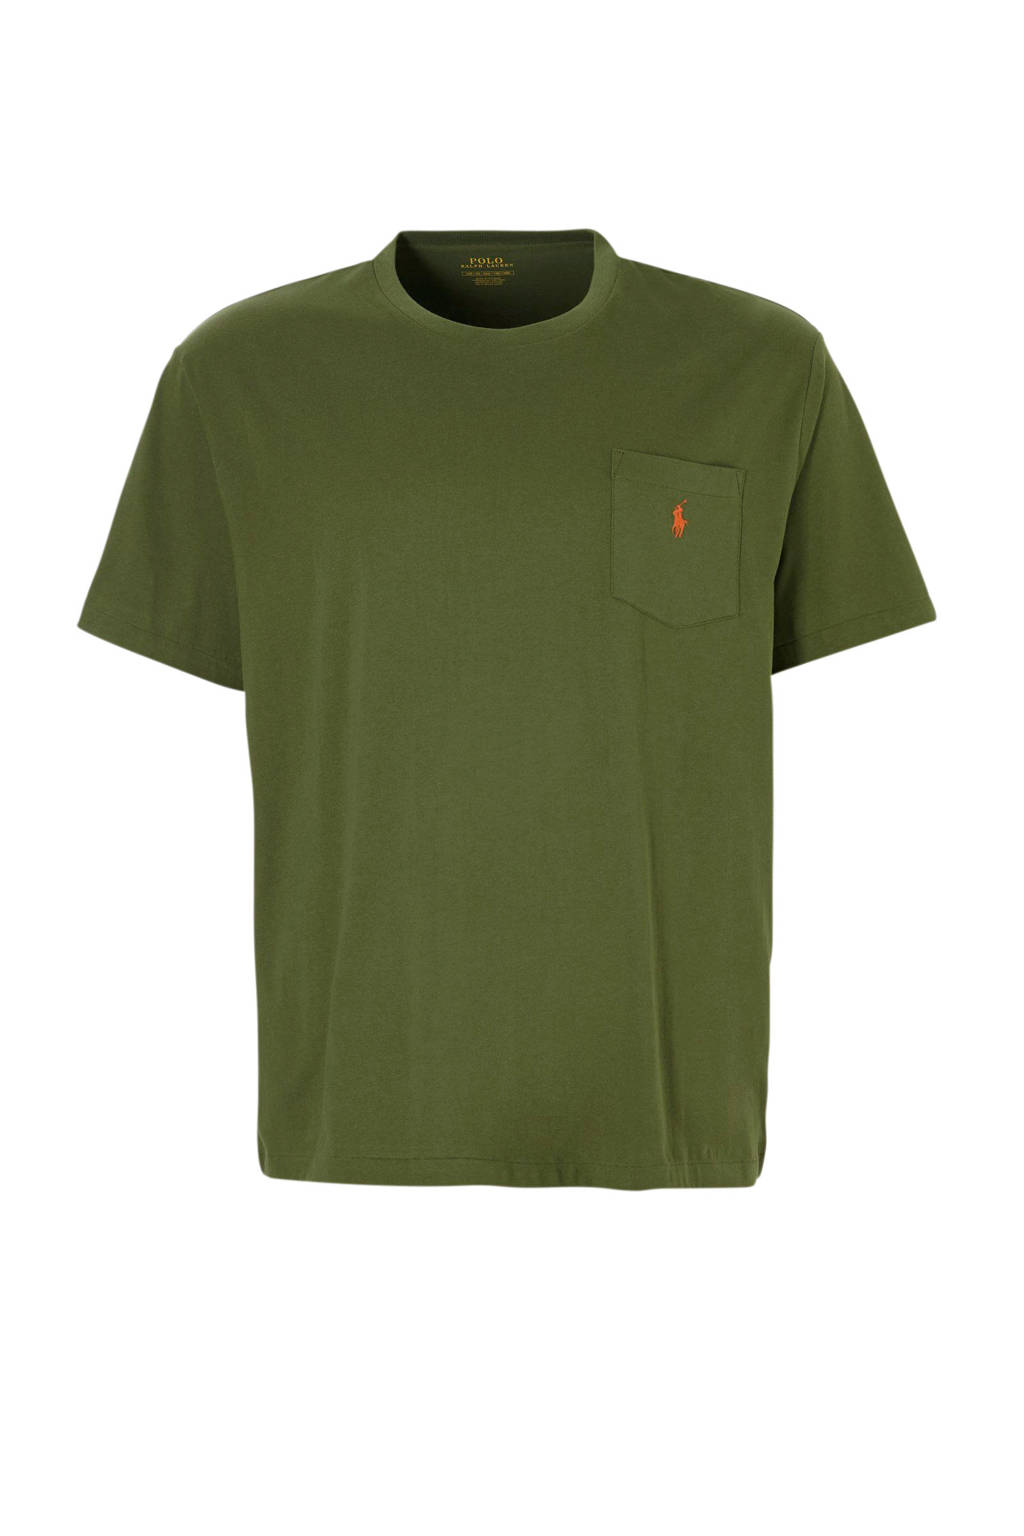 POLO Ralph Lauren Big & Tall +size t-shirt, Donkergroen